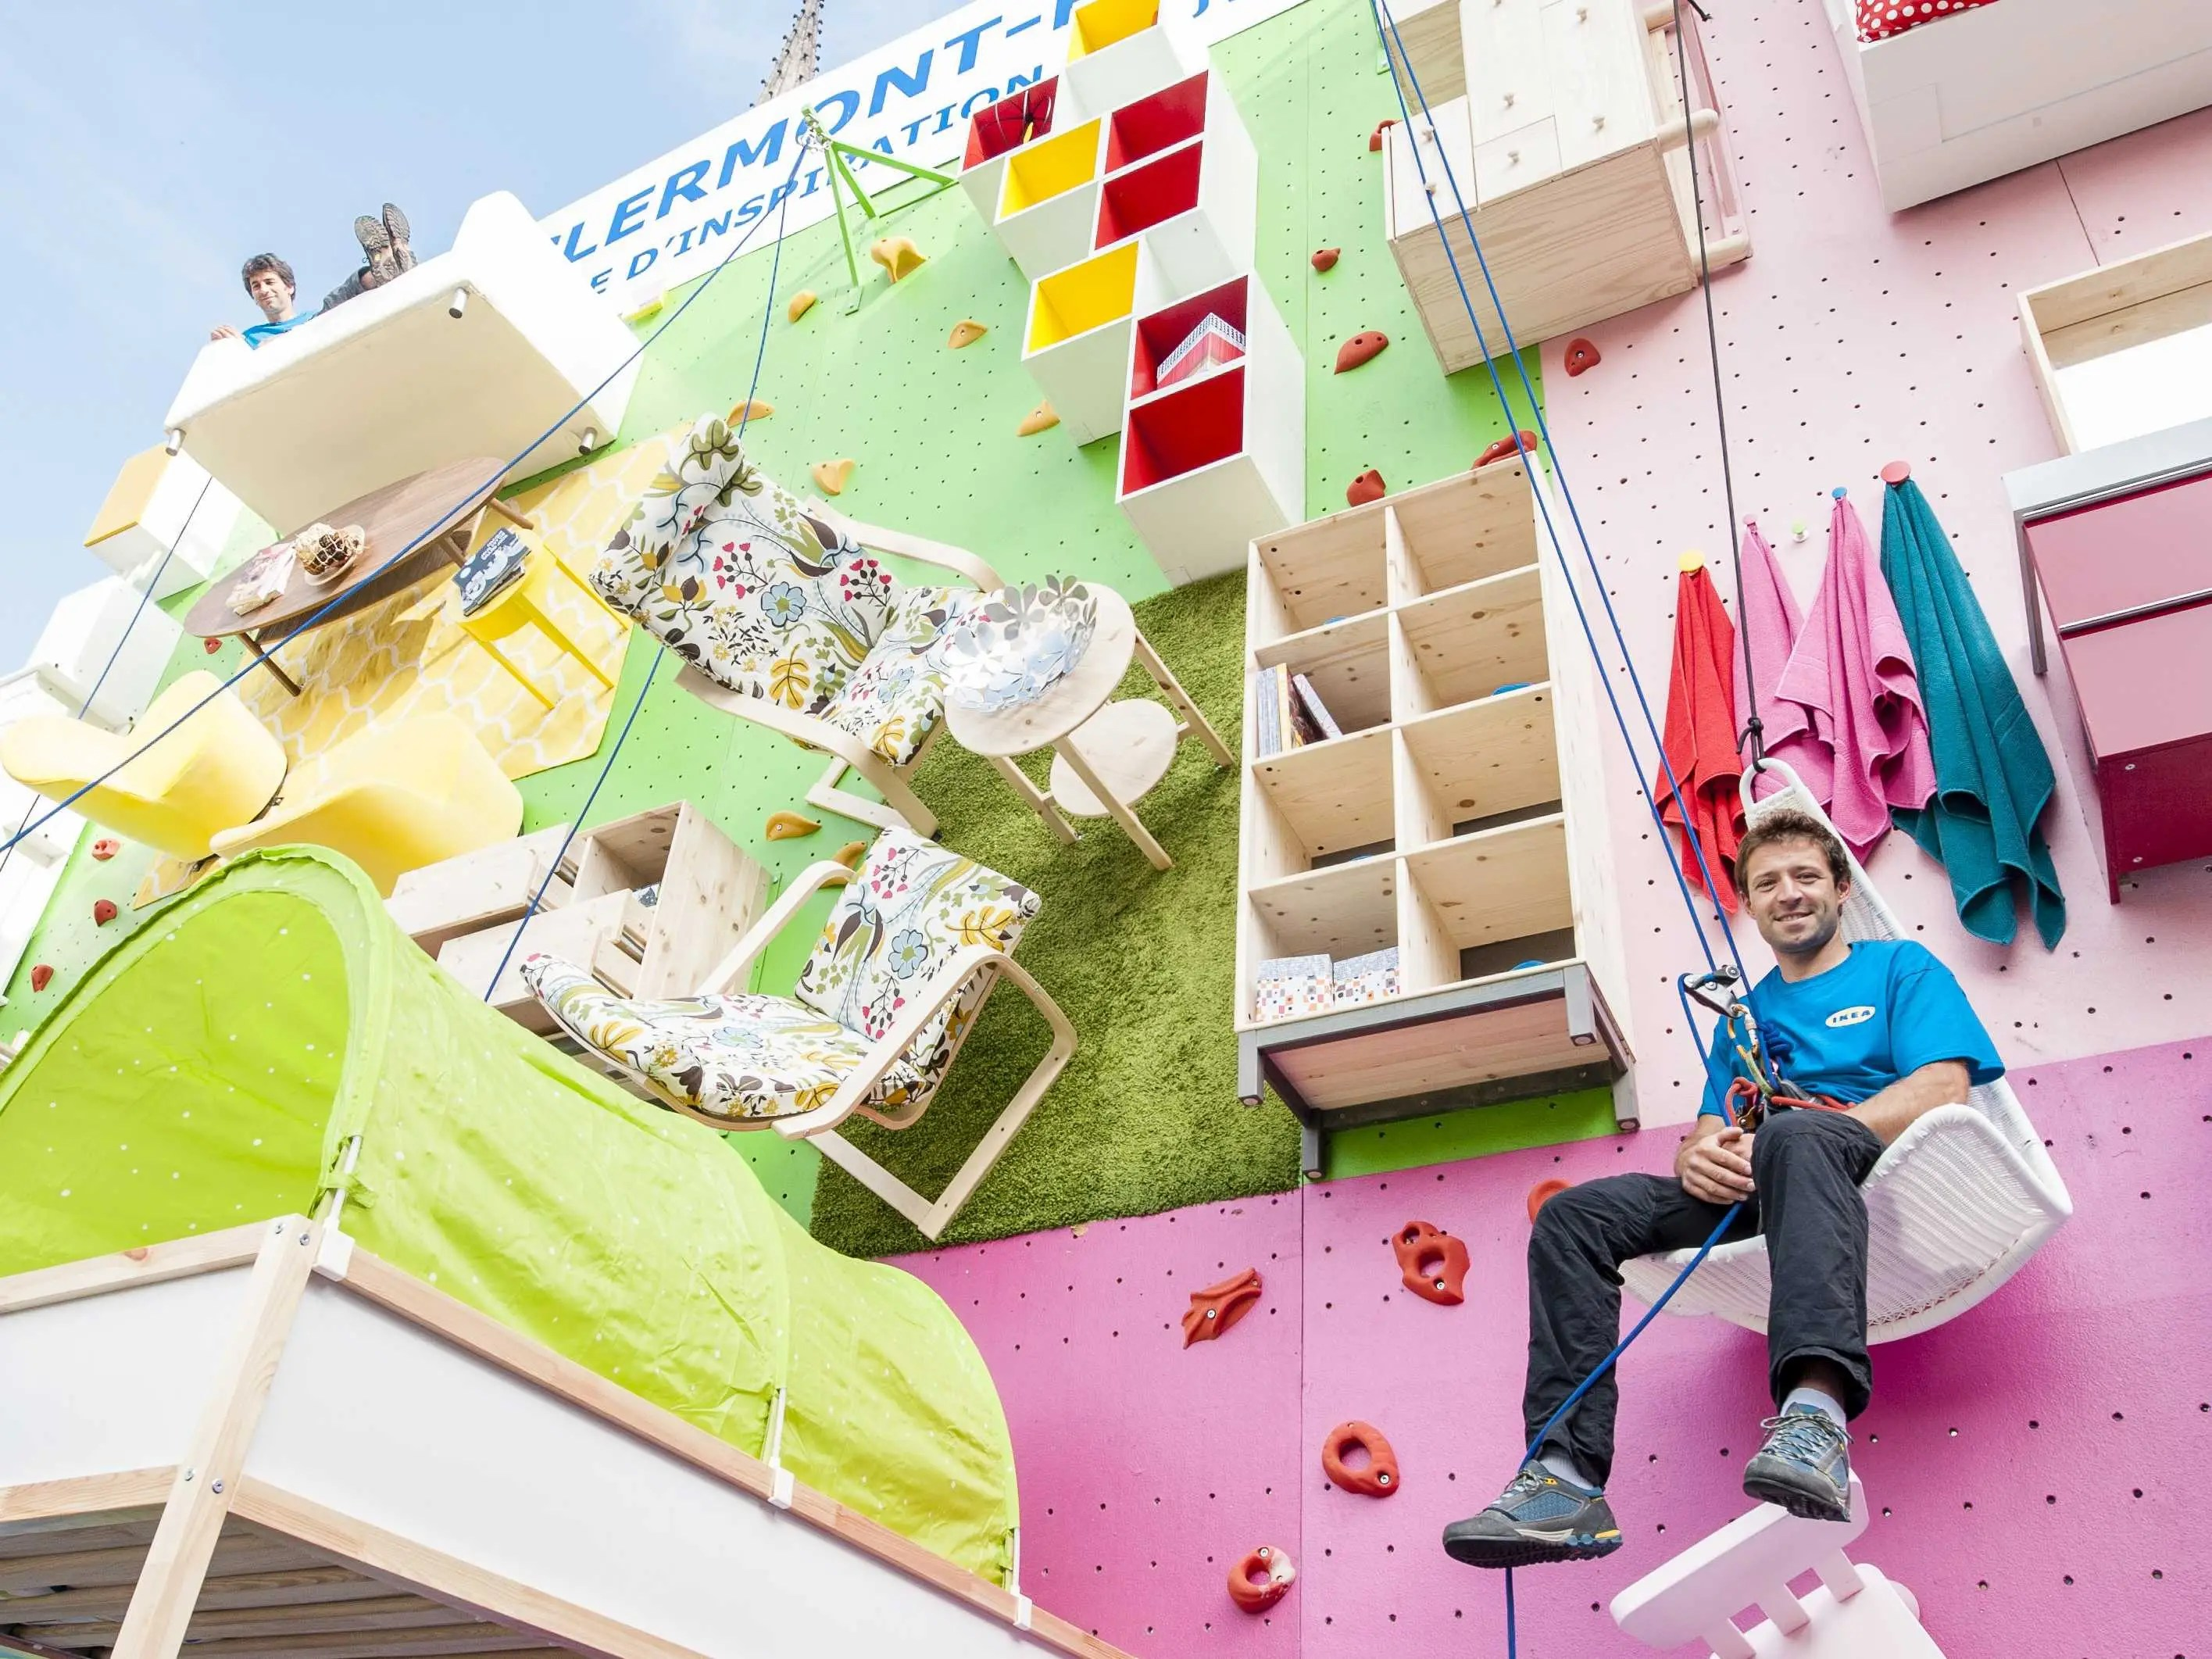 Ikea Built An Awesome Rock Climbing Wall In France Using Its